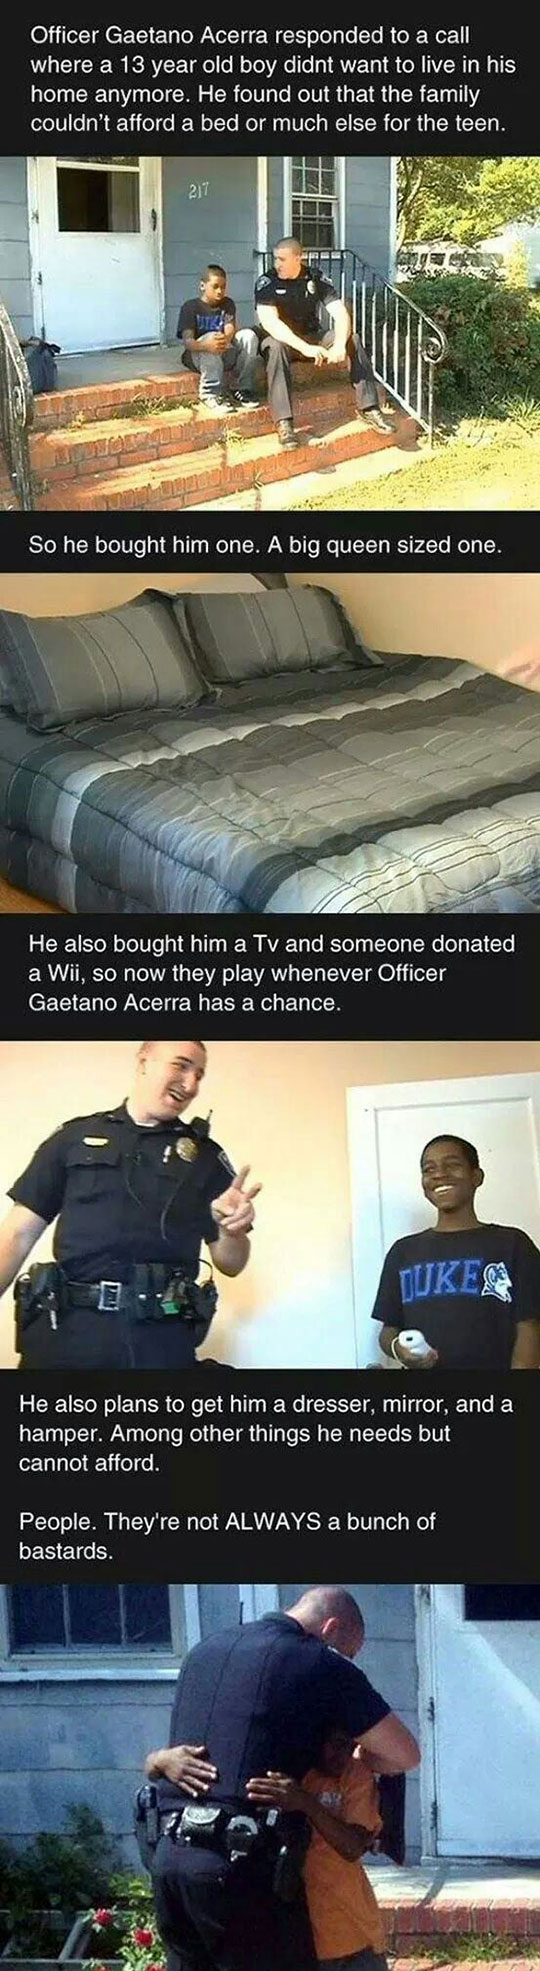 Faith In Police Officers Restored